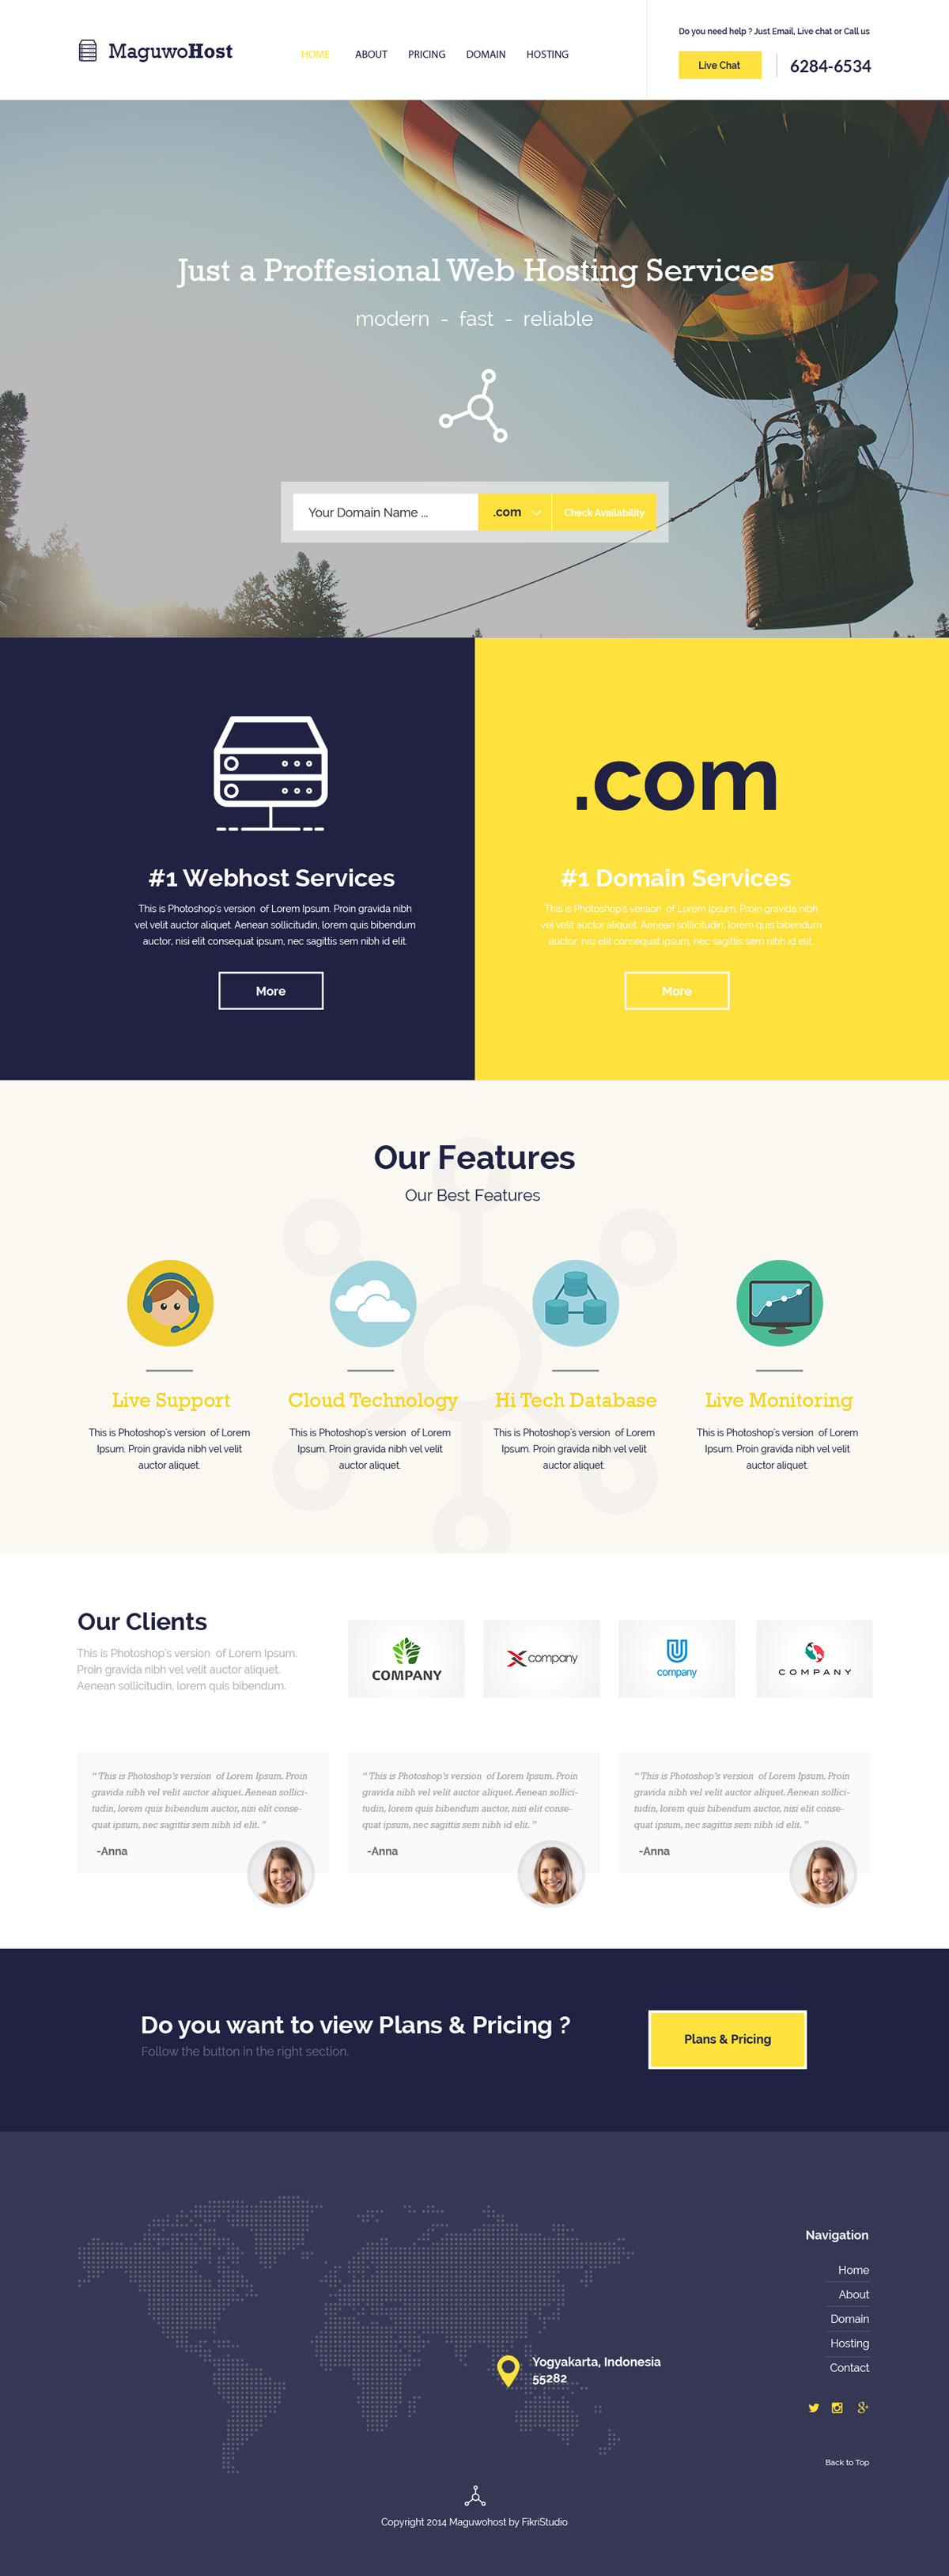 Maguwohost - FREE Hosting Template